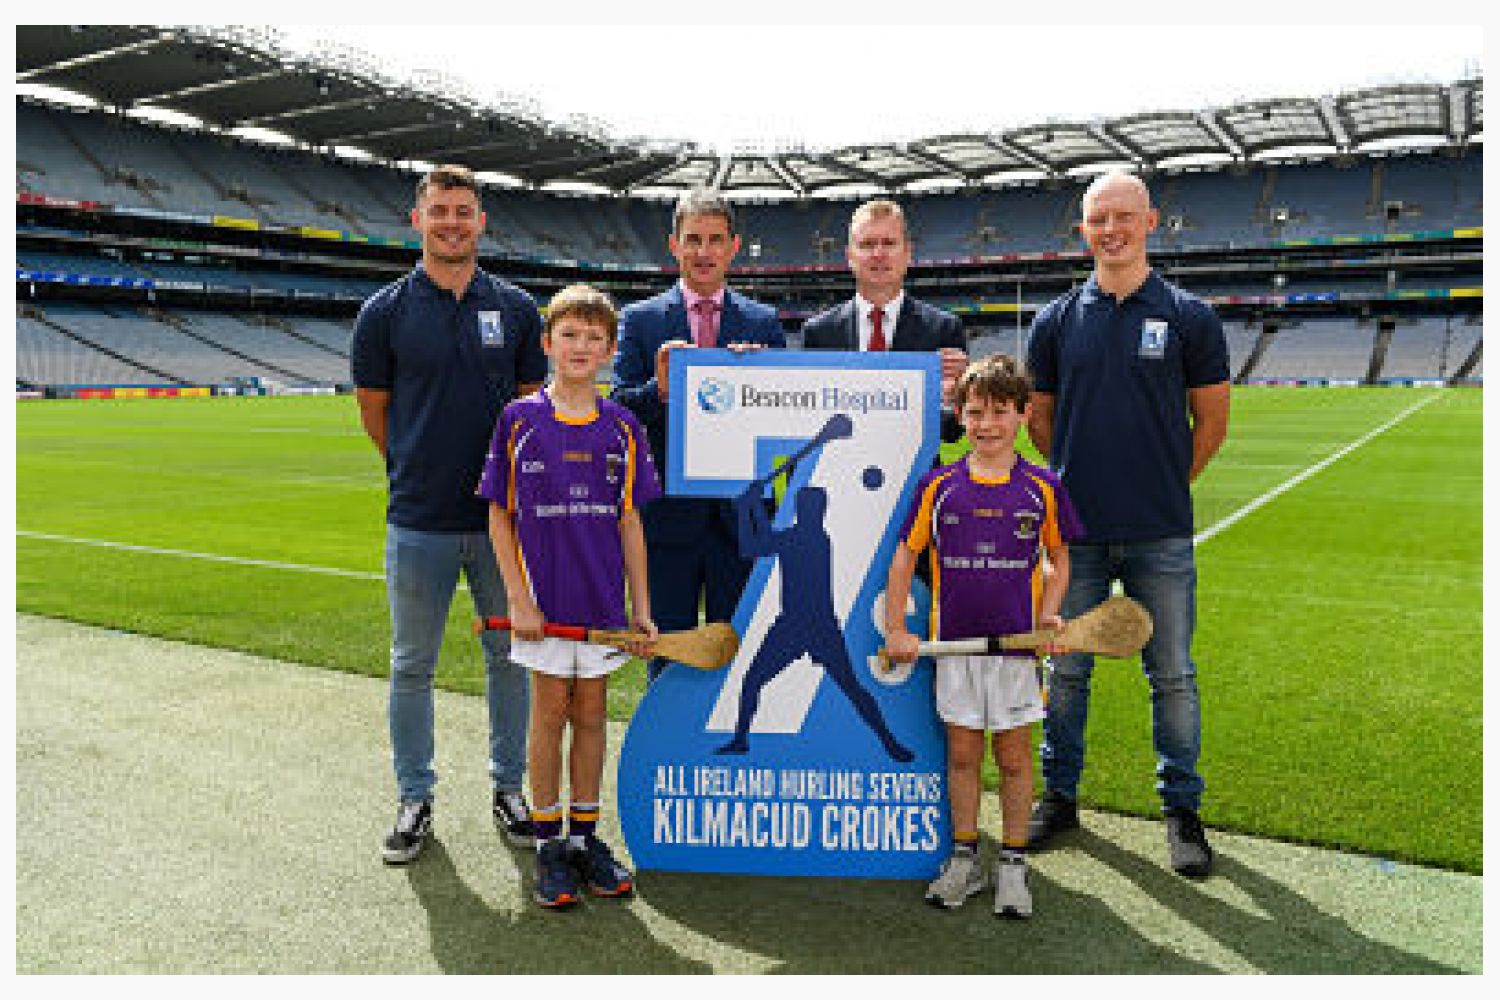 Beacon Hospital Kilmacud Crokes All-Ireland Hurling Sevens 2018